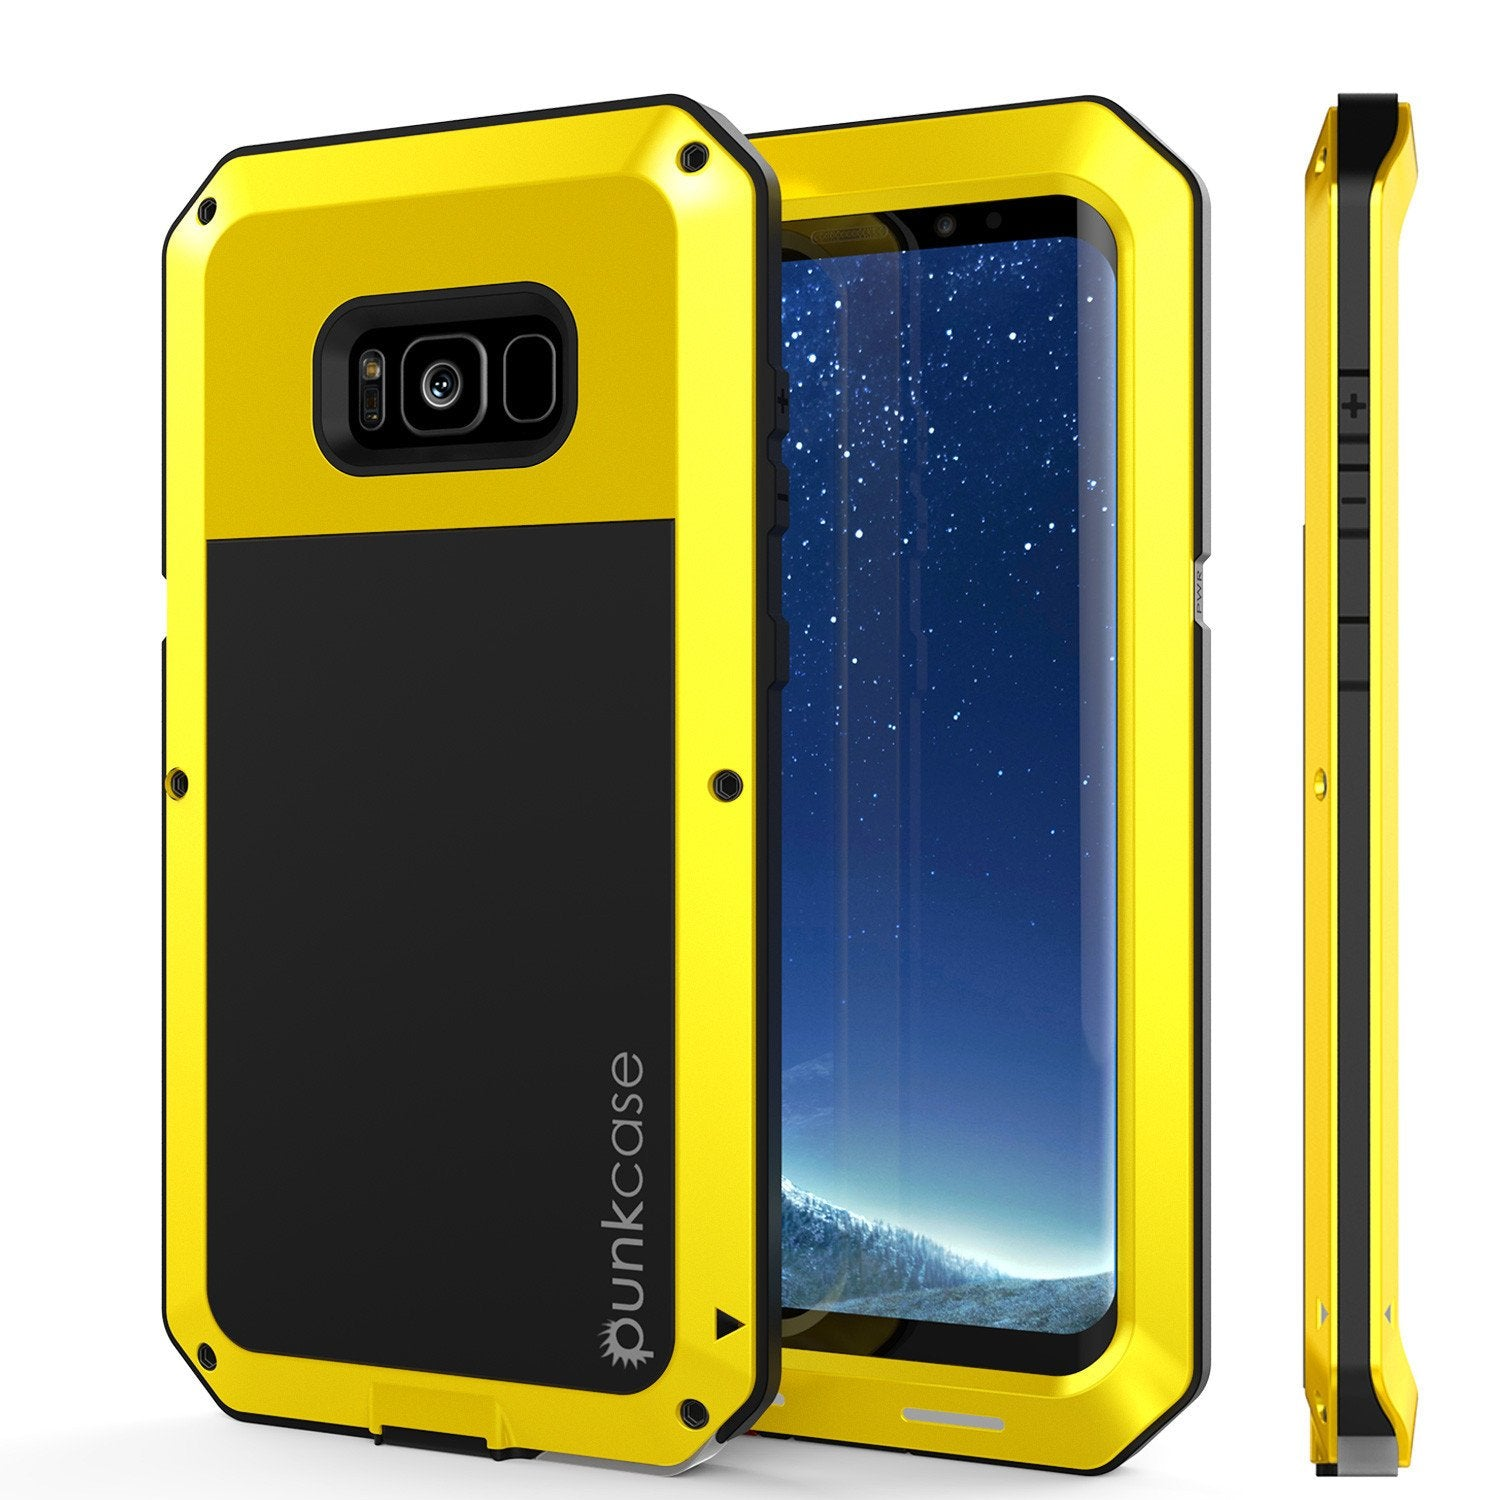 Galaxy S8 Metal Case, Heavy Duty Military Grade Rugged Cover [Neon]